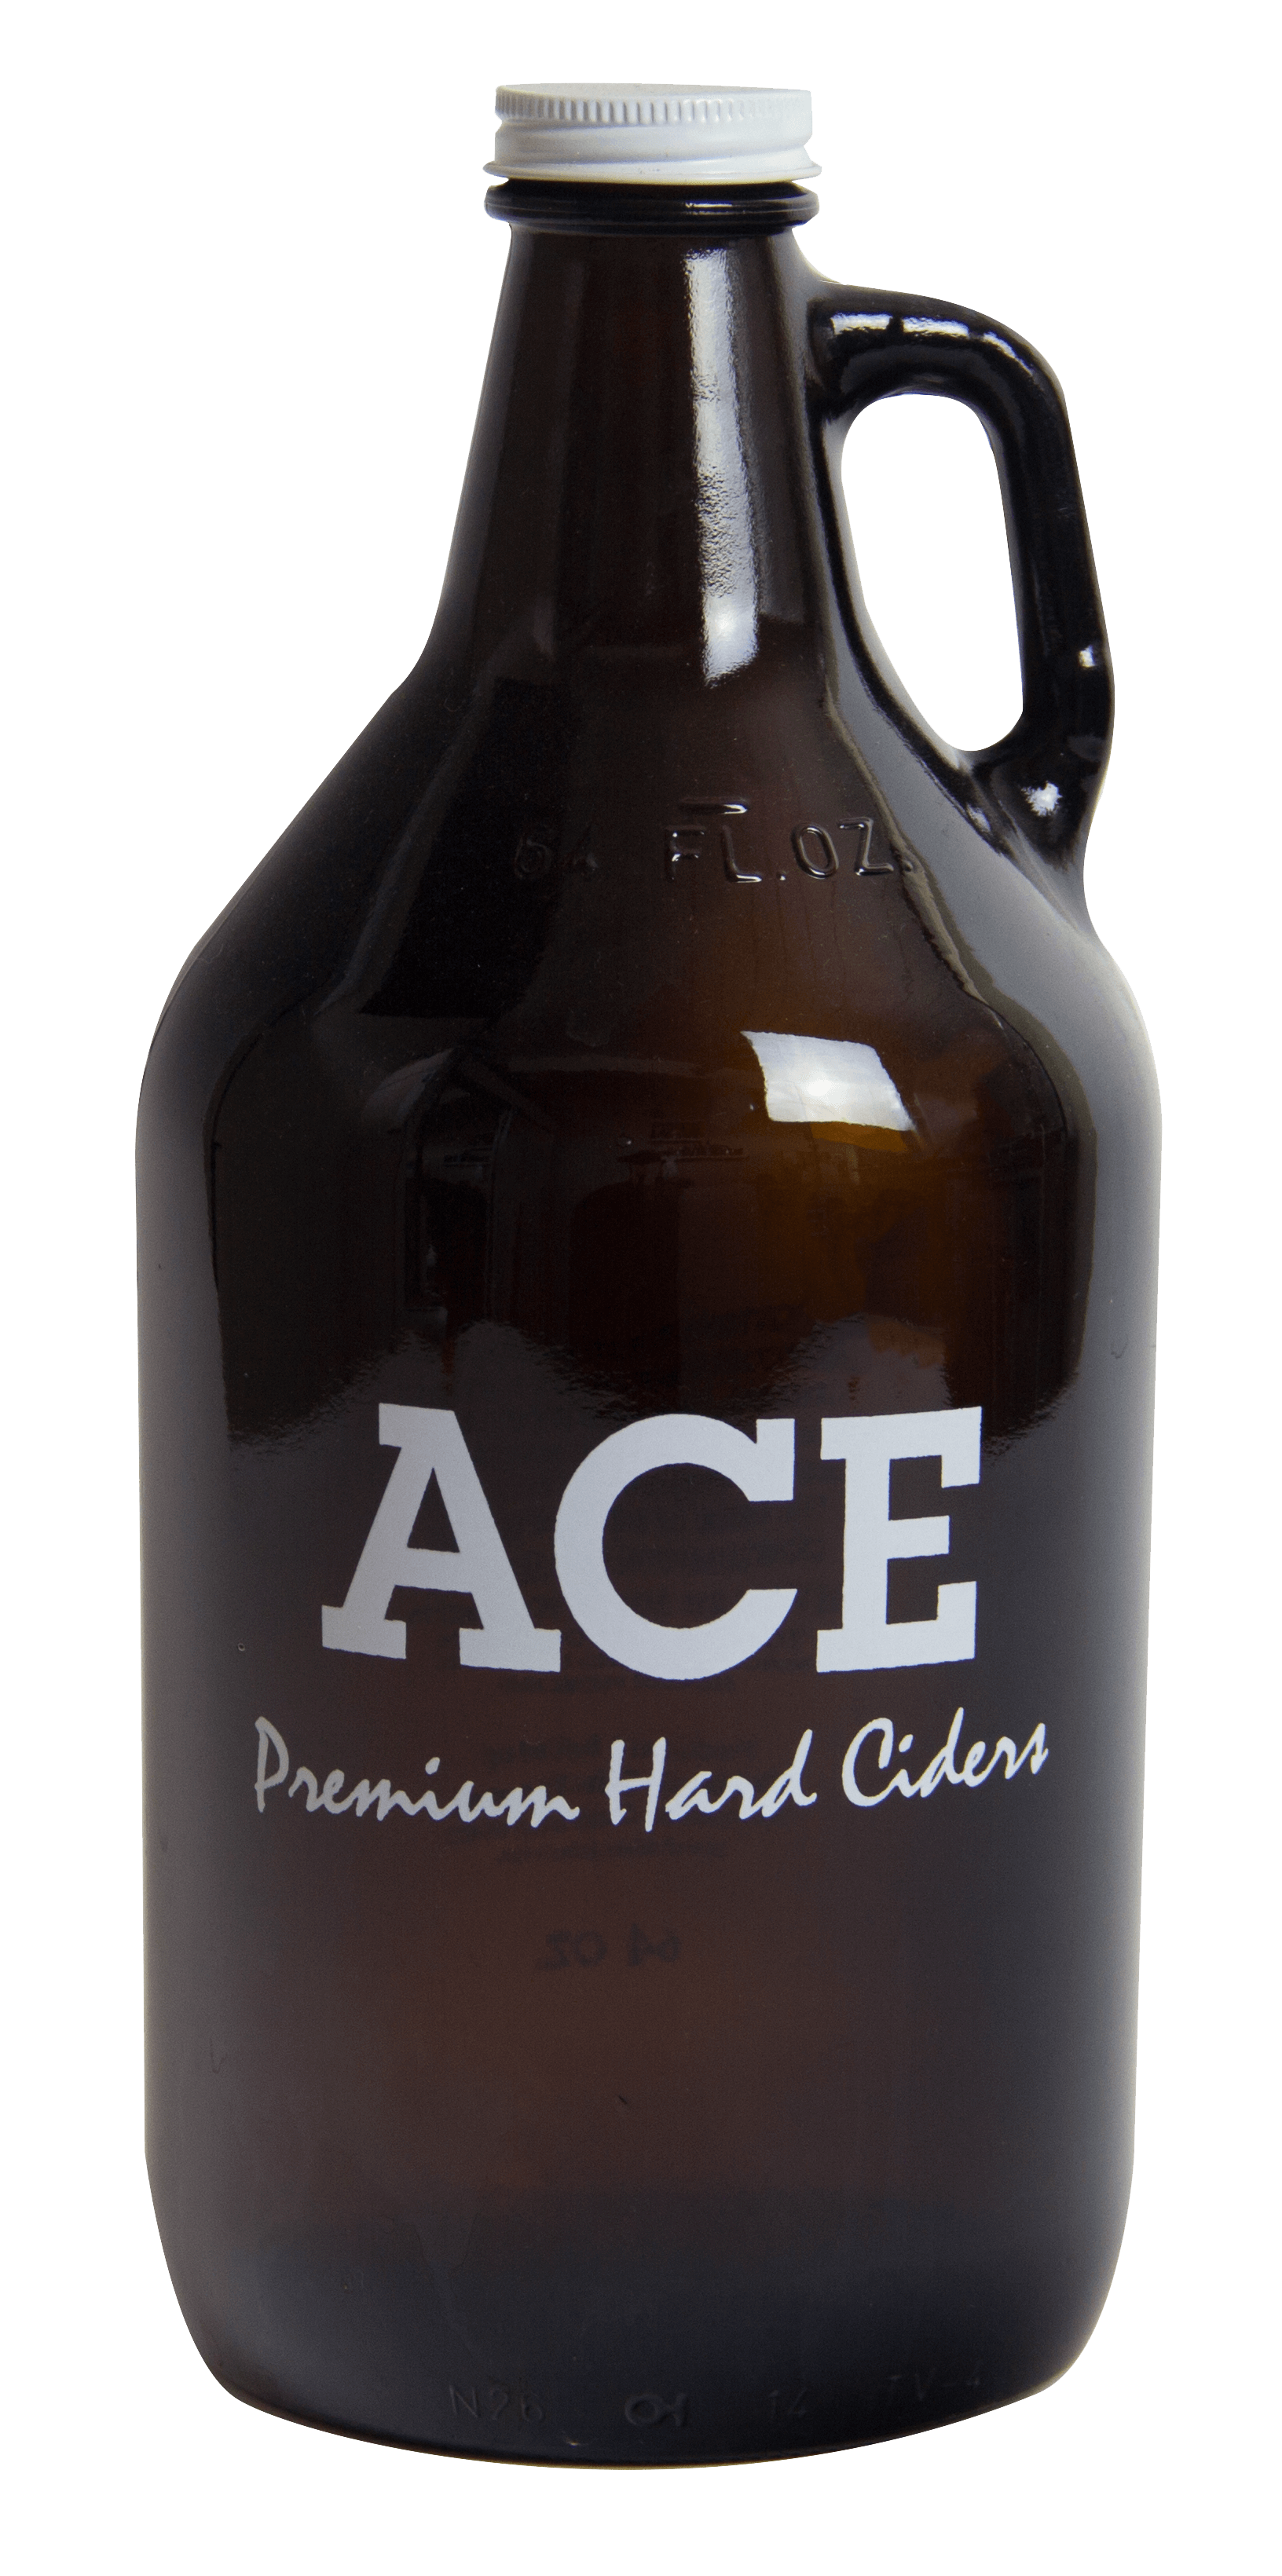 ACE Cider Growler